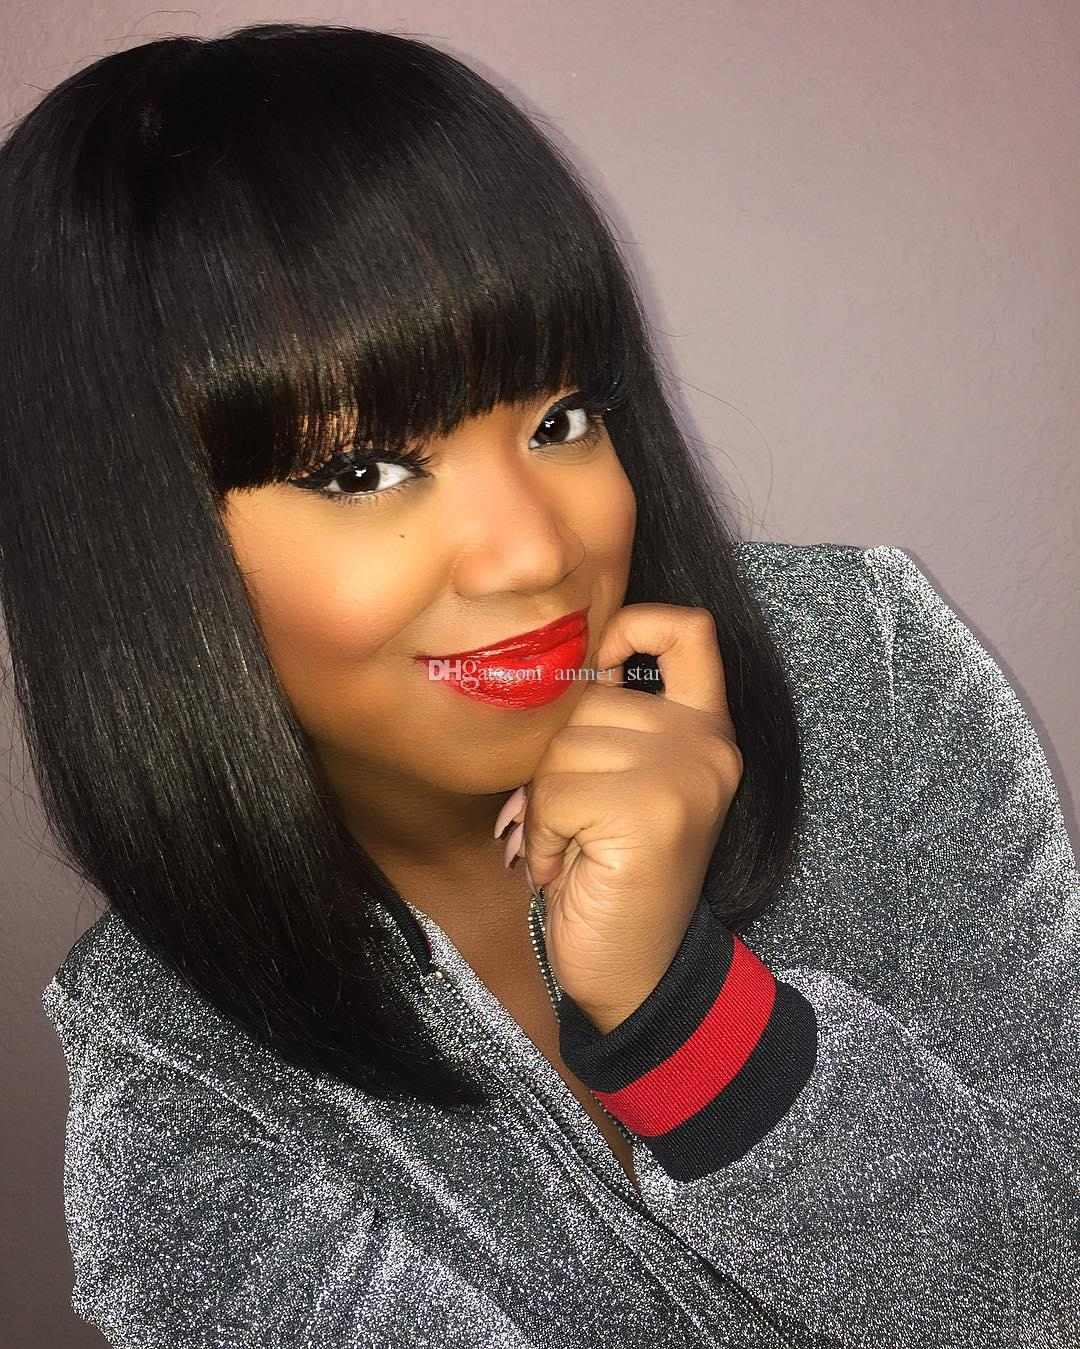 Bob Human Hair Wigs With Bangs Straight Brazilian Full Lace Wig With Baby Hair Virgin Lace Front Wig For Black Women